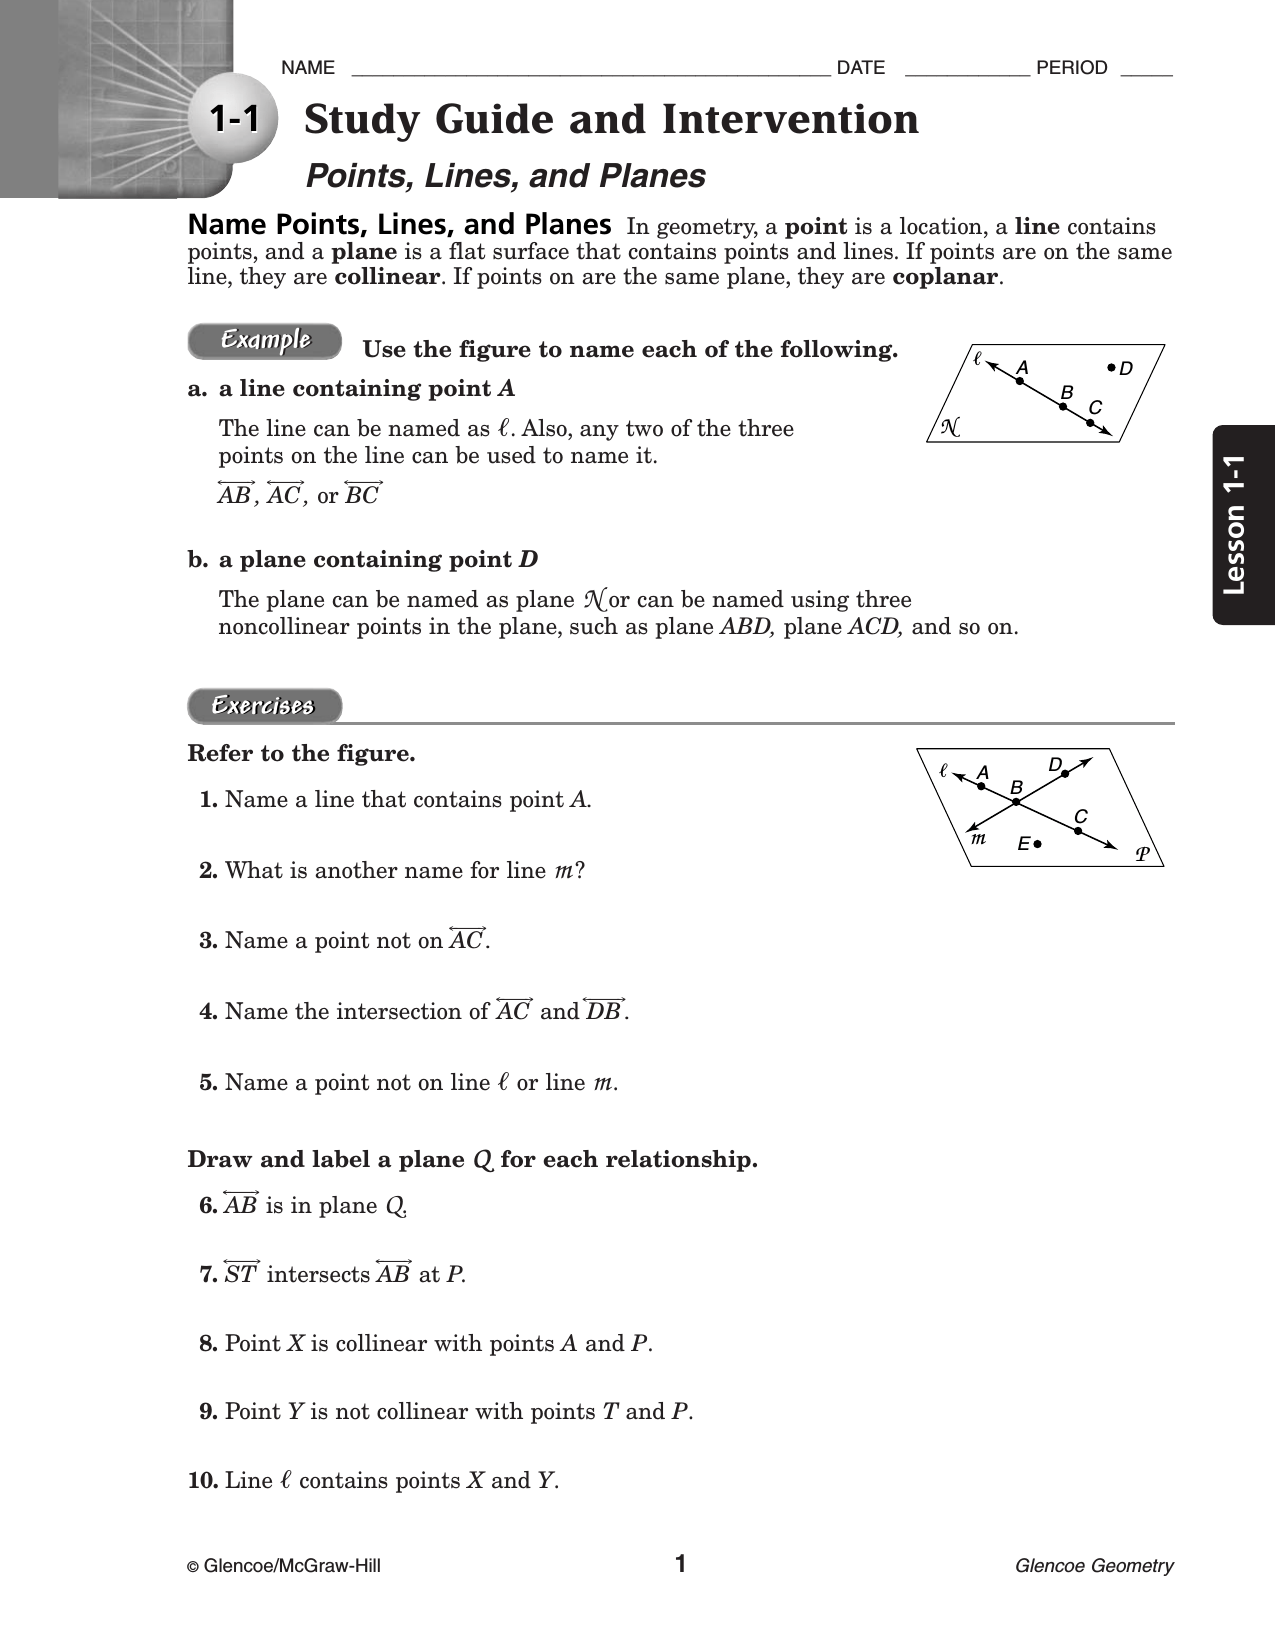 Glencoe Geometry Worksheet Answer Key